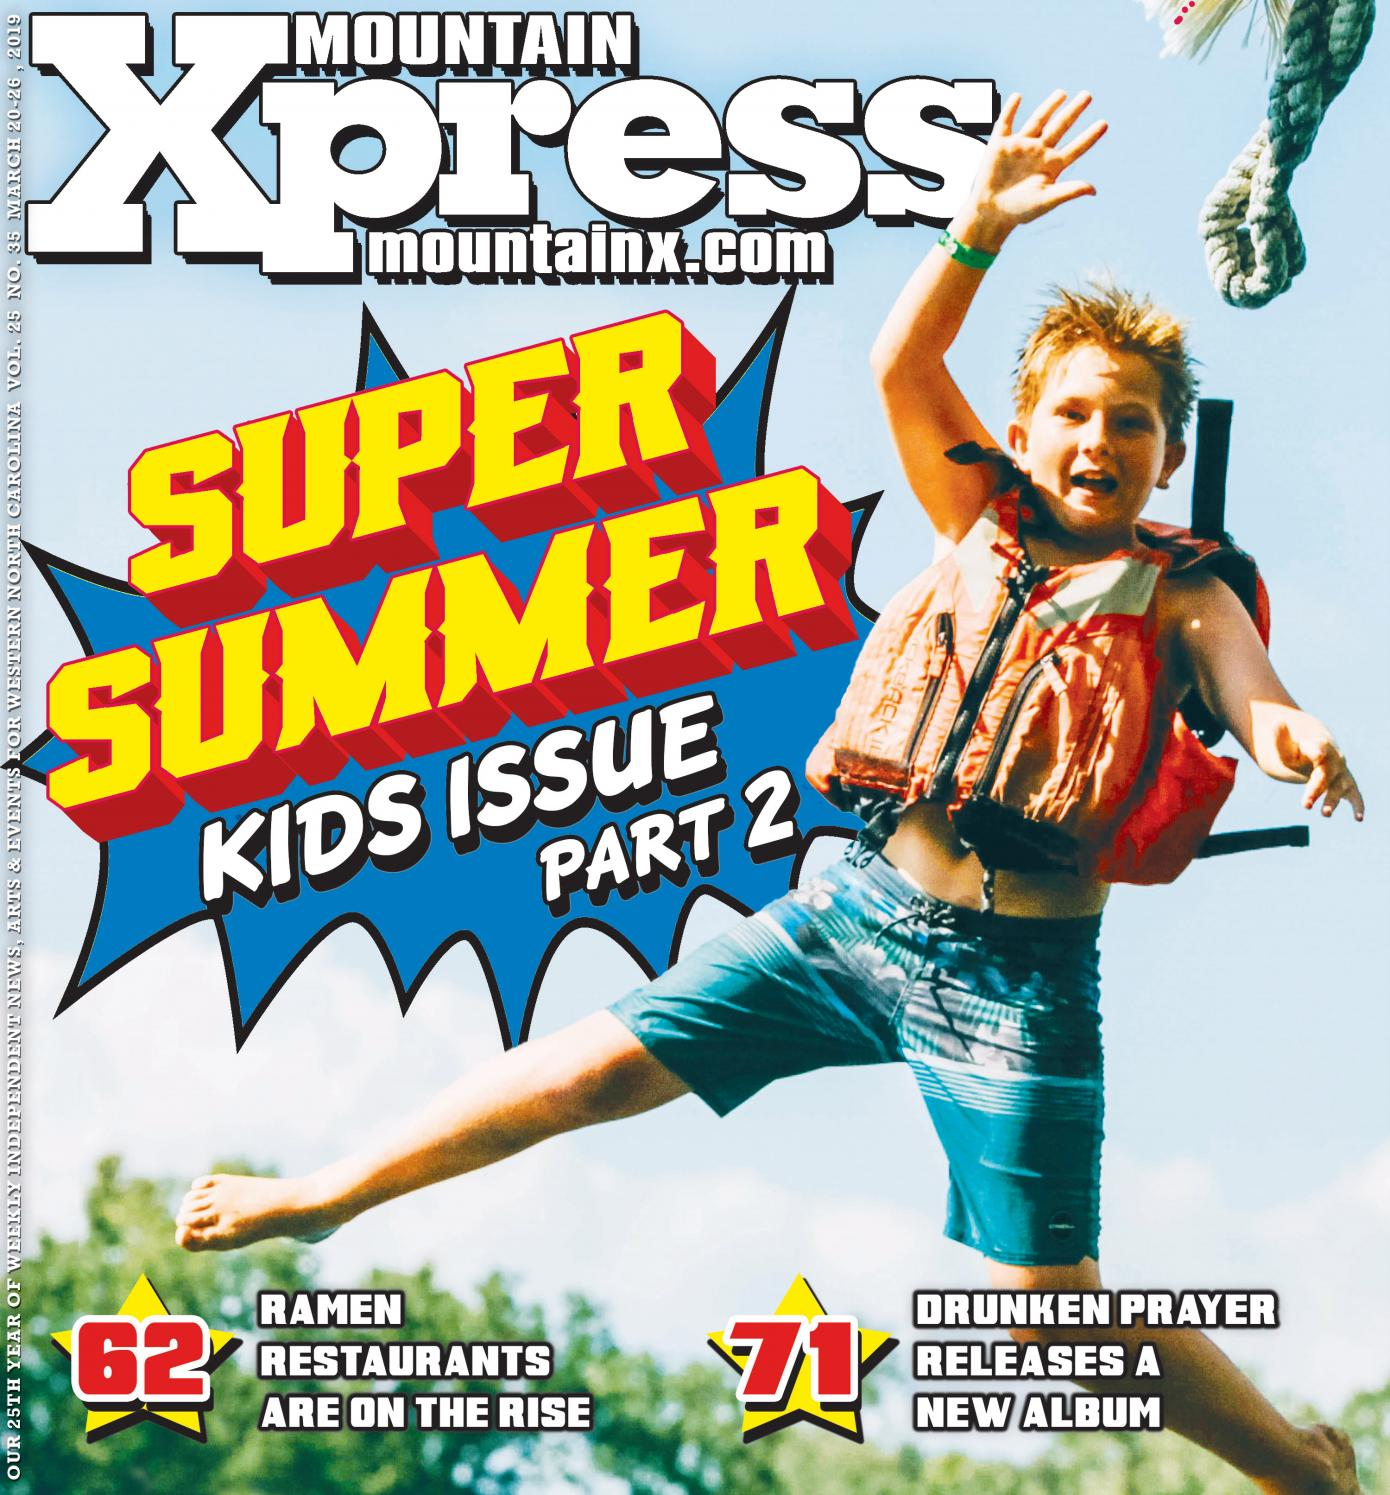 Mountain Xpress 03 20 19 by Mountain Xpress - issuu